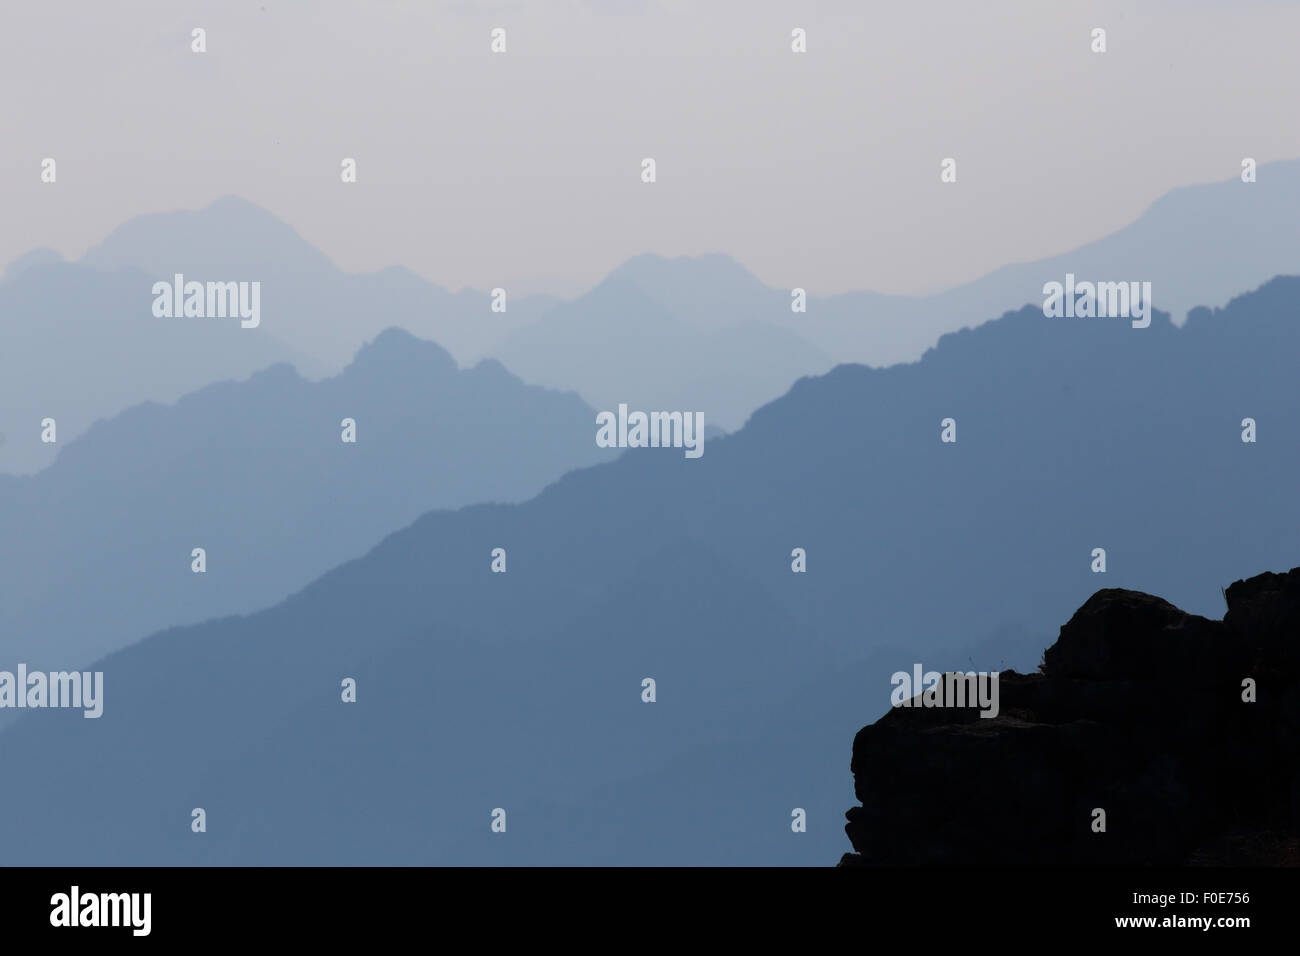 Abstract photo of distant mountain peaks in northern Italy (vista seen from Monte Baldo at lake Garda) - Stock Image